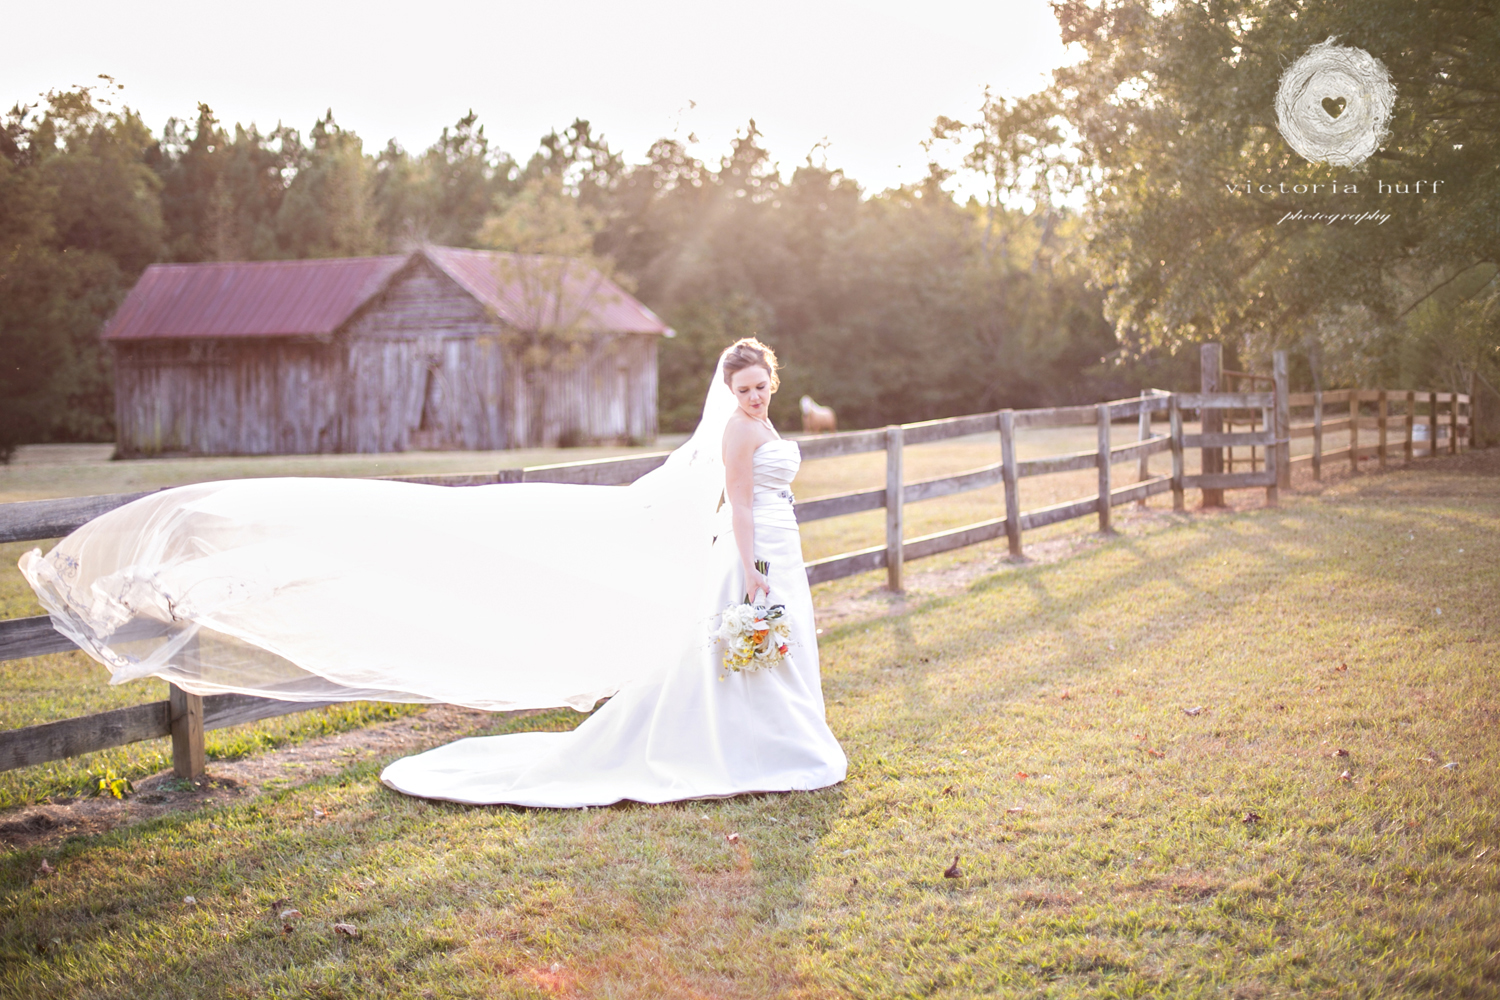 Wedding-Photography-Emily-Phillips-The-Corry-House-Union-Point-Georgia-Vintage-Wedding-5.jpg